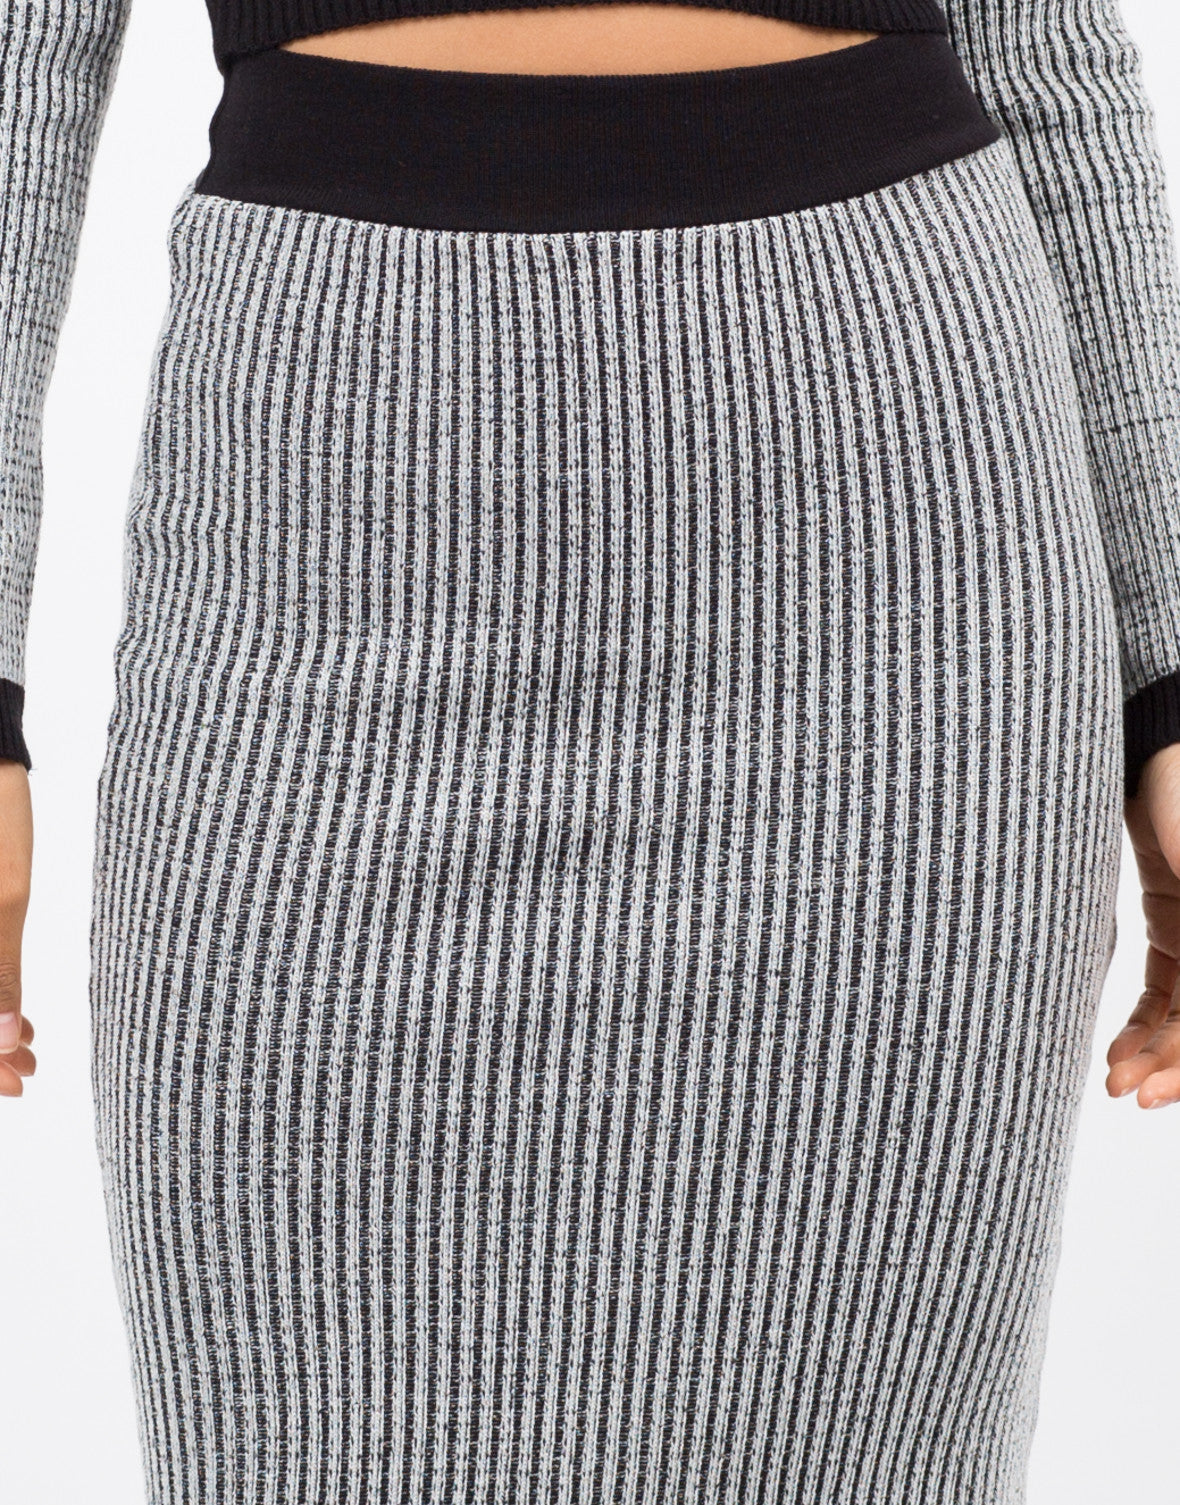 Detail of Marled Knit Midi Skirt